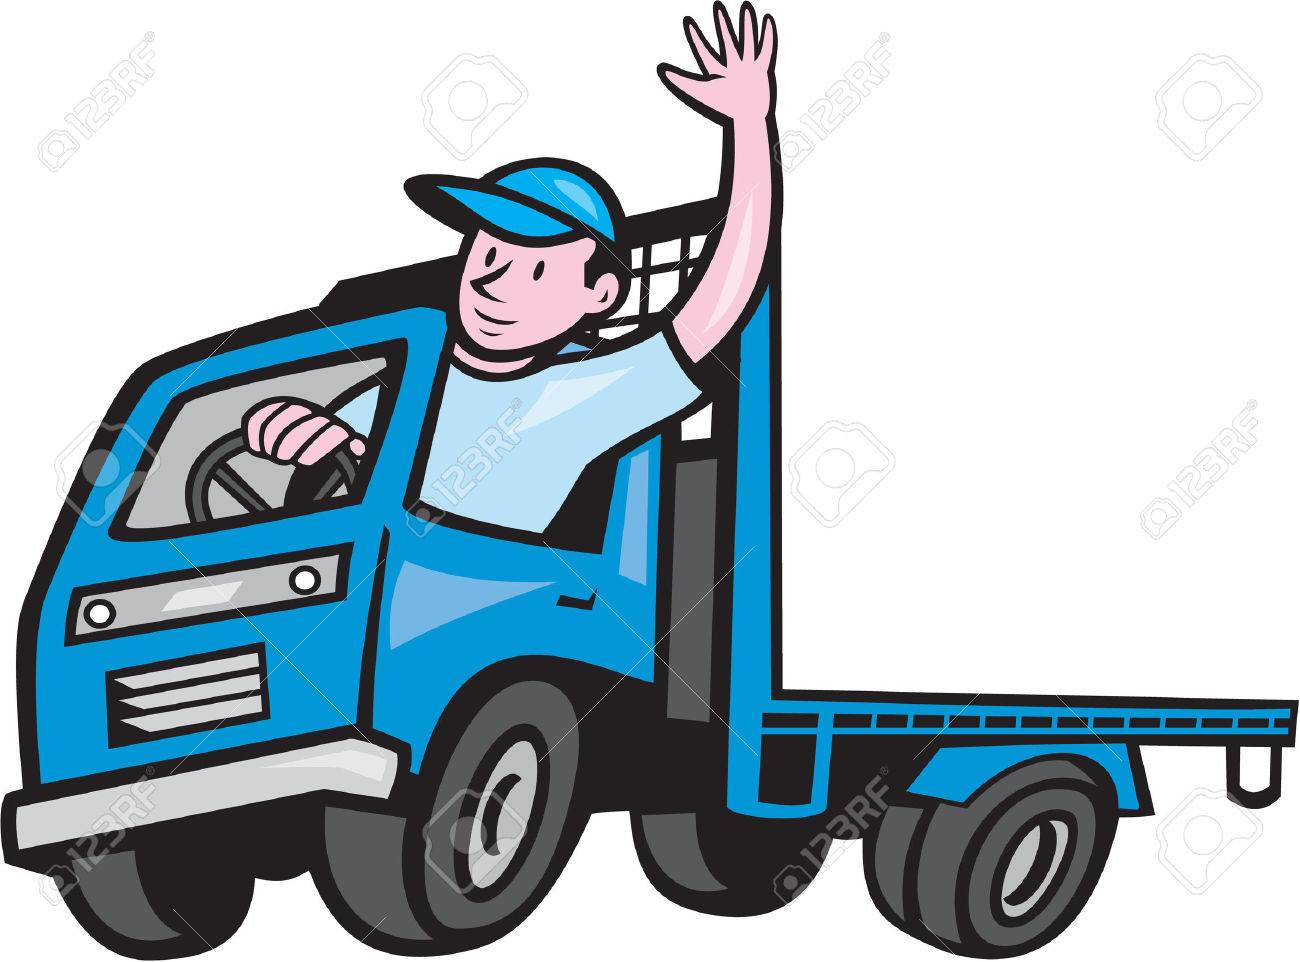 Illustration of a flatbed truck with driver waving hello on isolated white background done in cartoon style. - 32311174